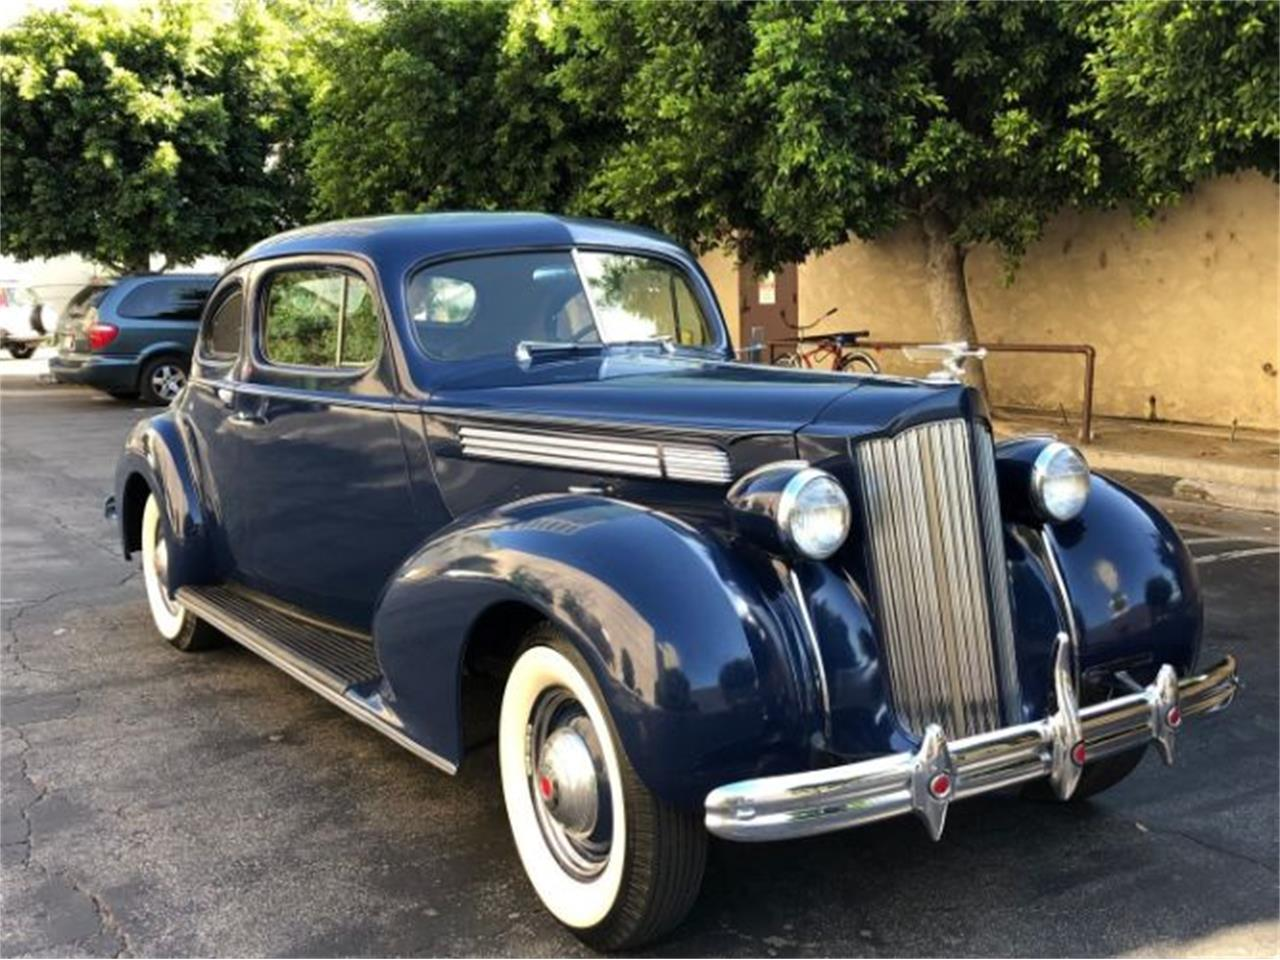 For Sale: 1939 Packard Business Coupe in Cadillac, Michigan